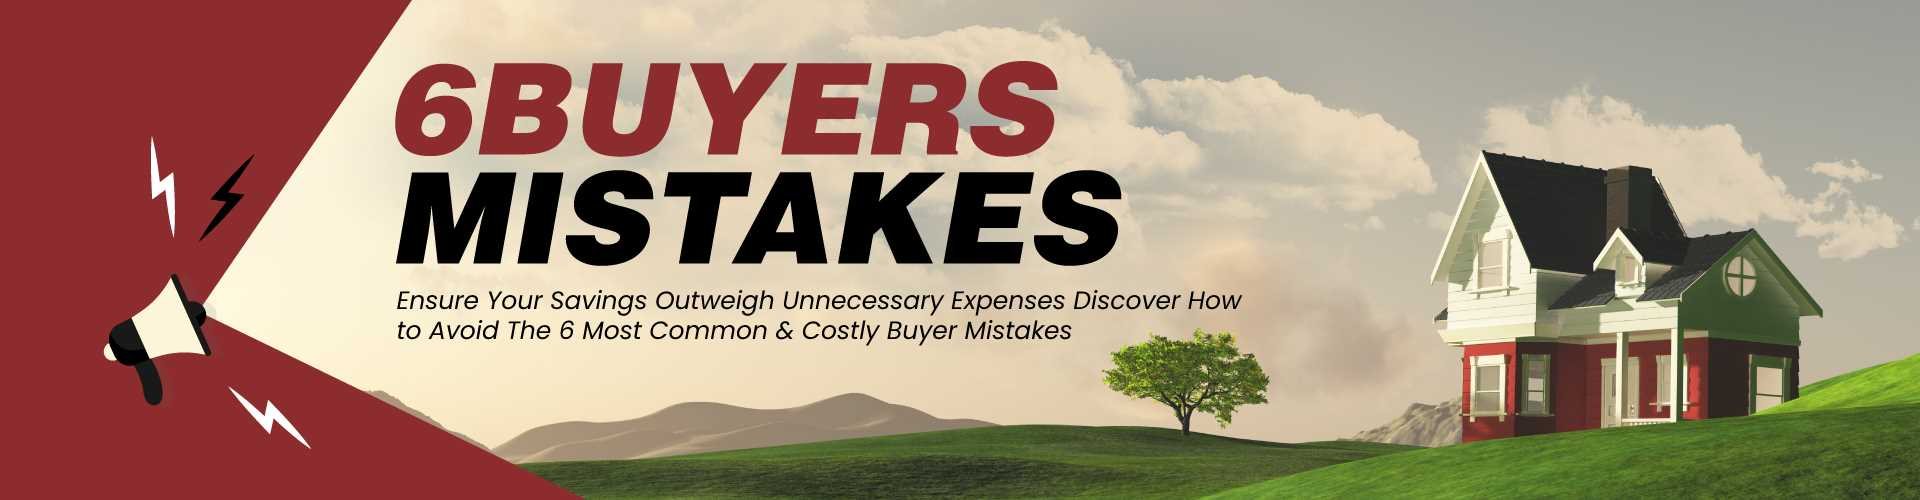 Discover How to Avoid the 6 Biggest Mistakes Homebuyers Make Image